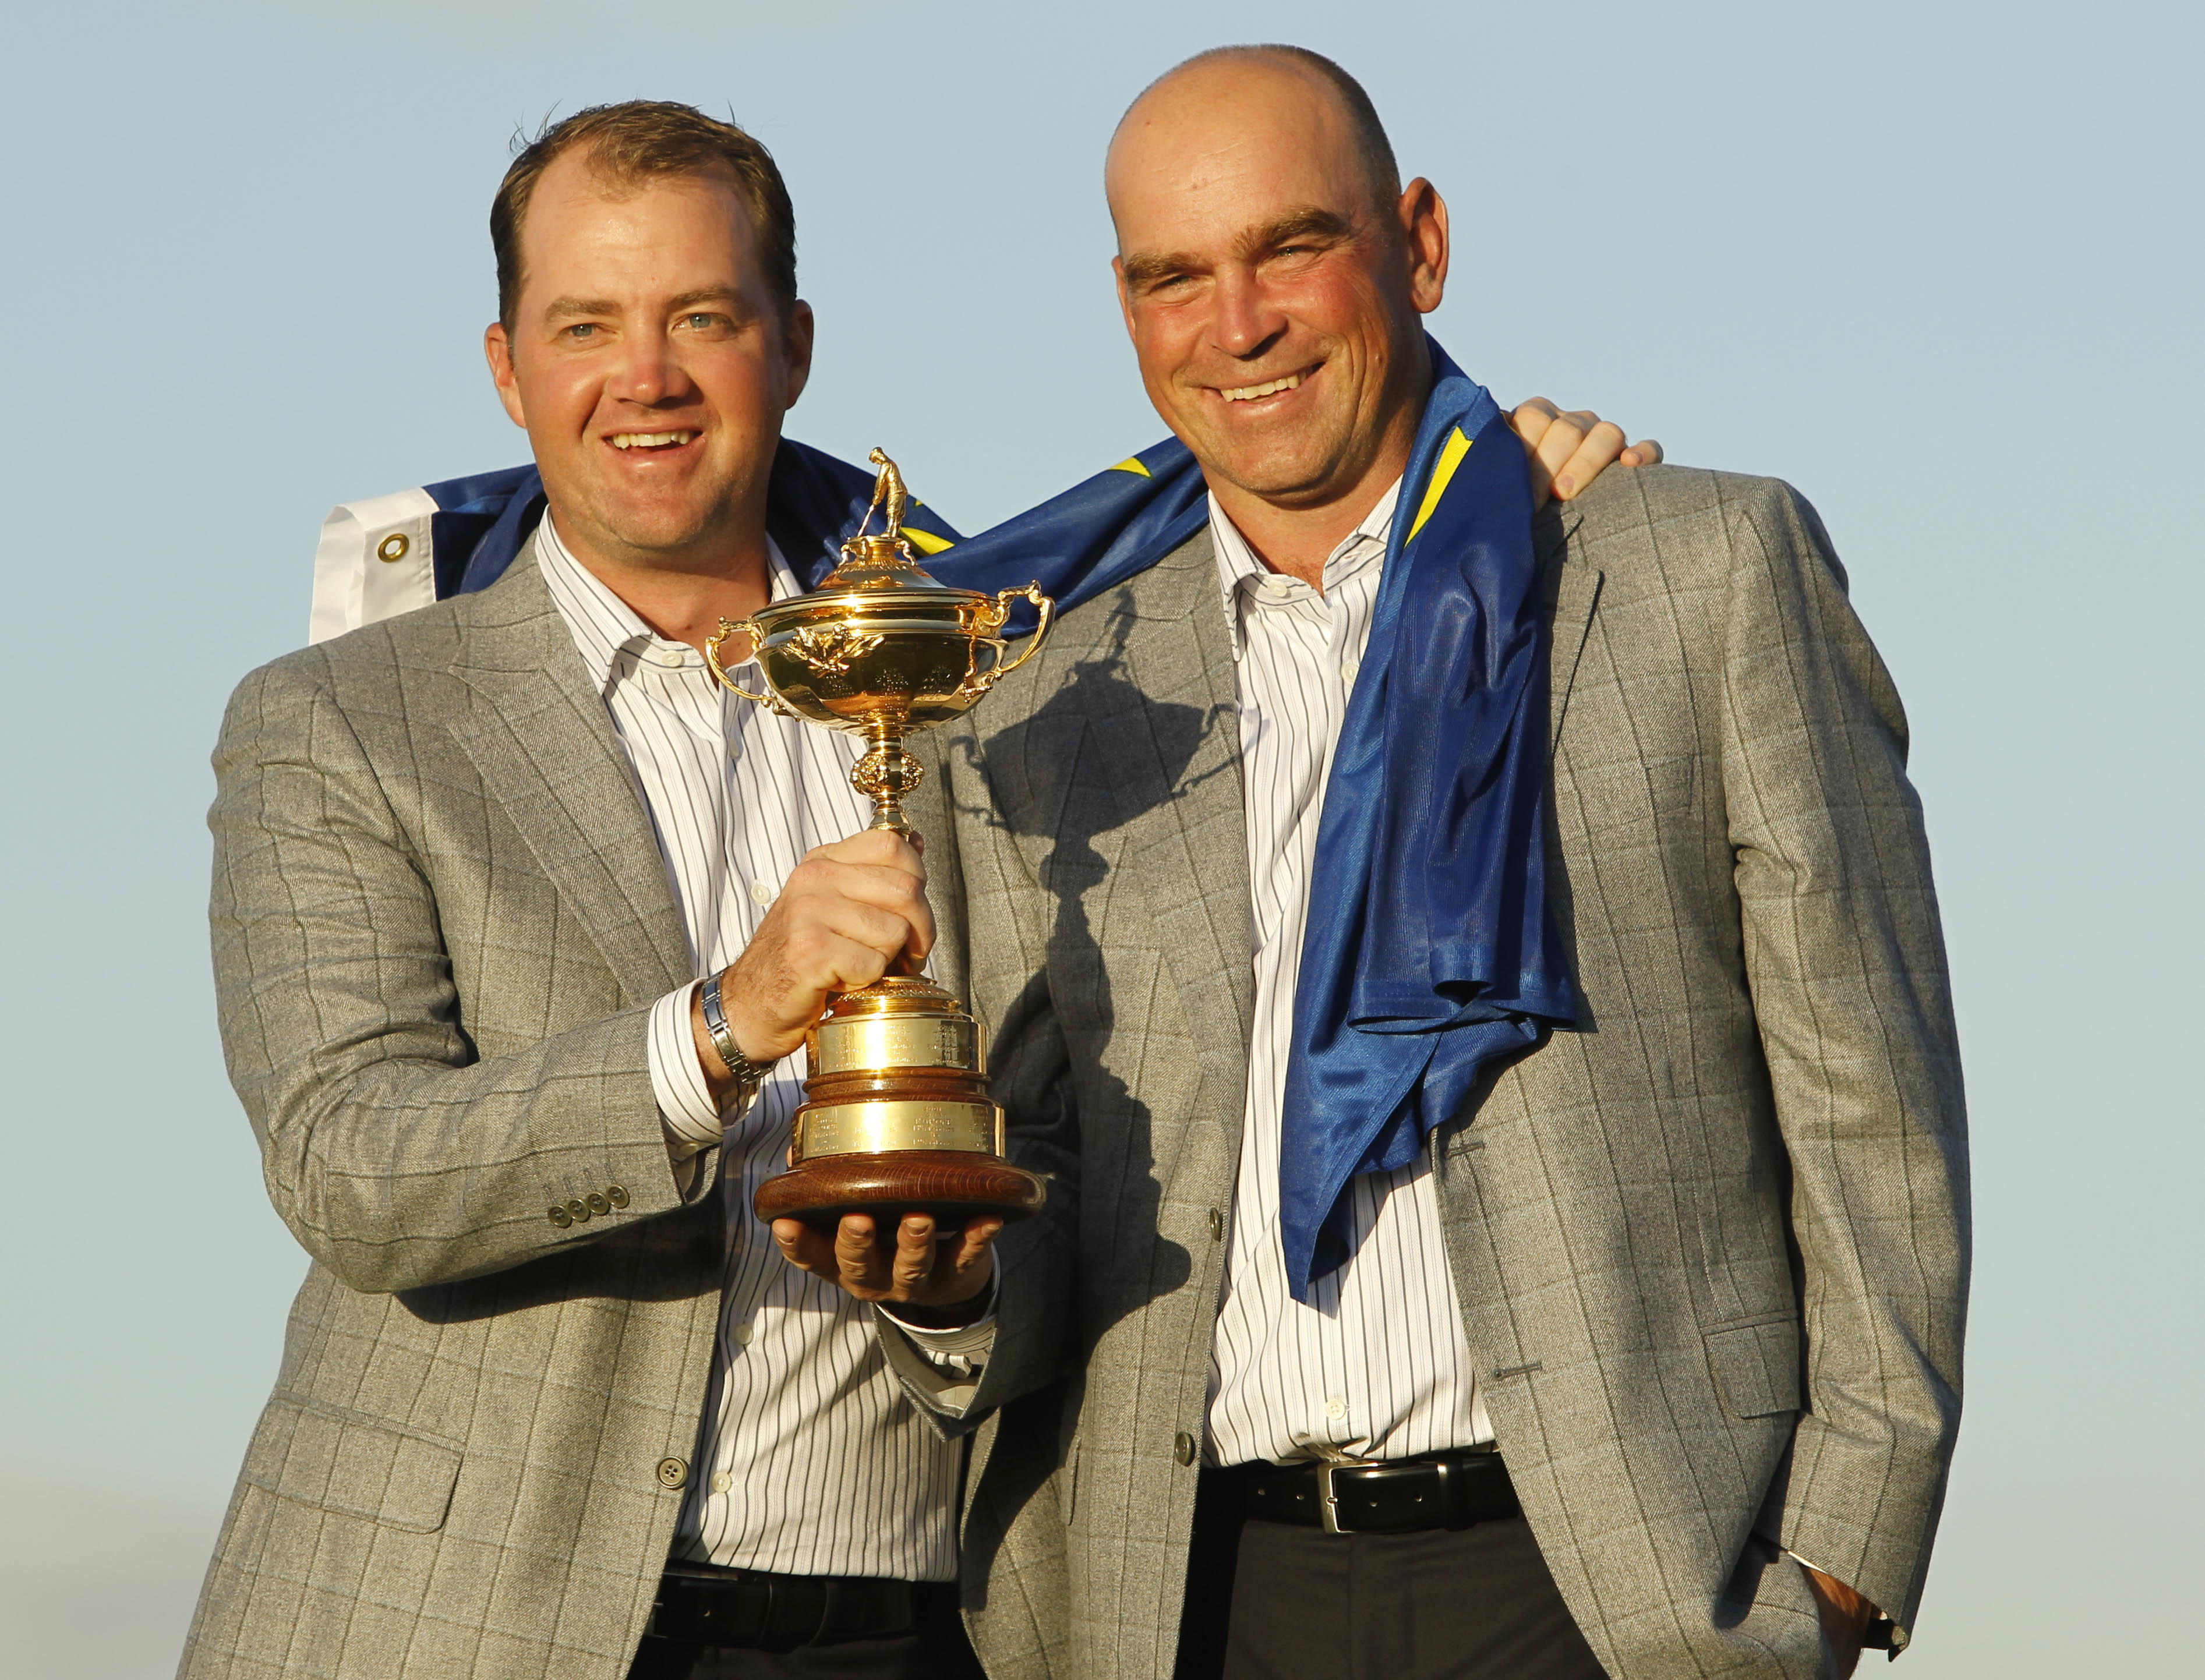 FILE - In this Monday, Oct. 4, 2010 file photo, Europe's Peter Hanson, left, and assistant captain Thomas Bjorn hold the trophy after Europe won the 2010 Ryder Cup golf tournament at the Celtic Manor Resort in Newport, Wales. Bjorn is the first Scandinavi